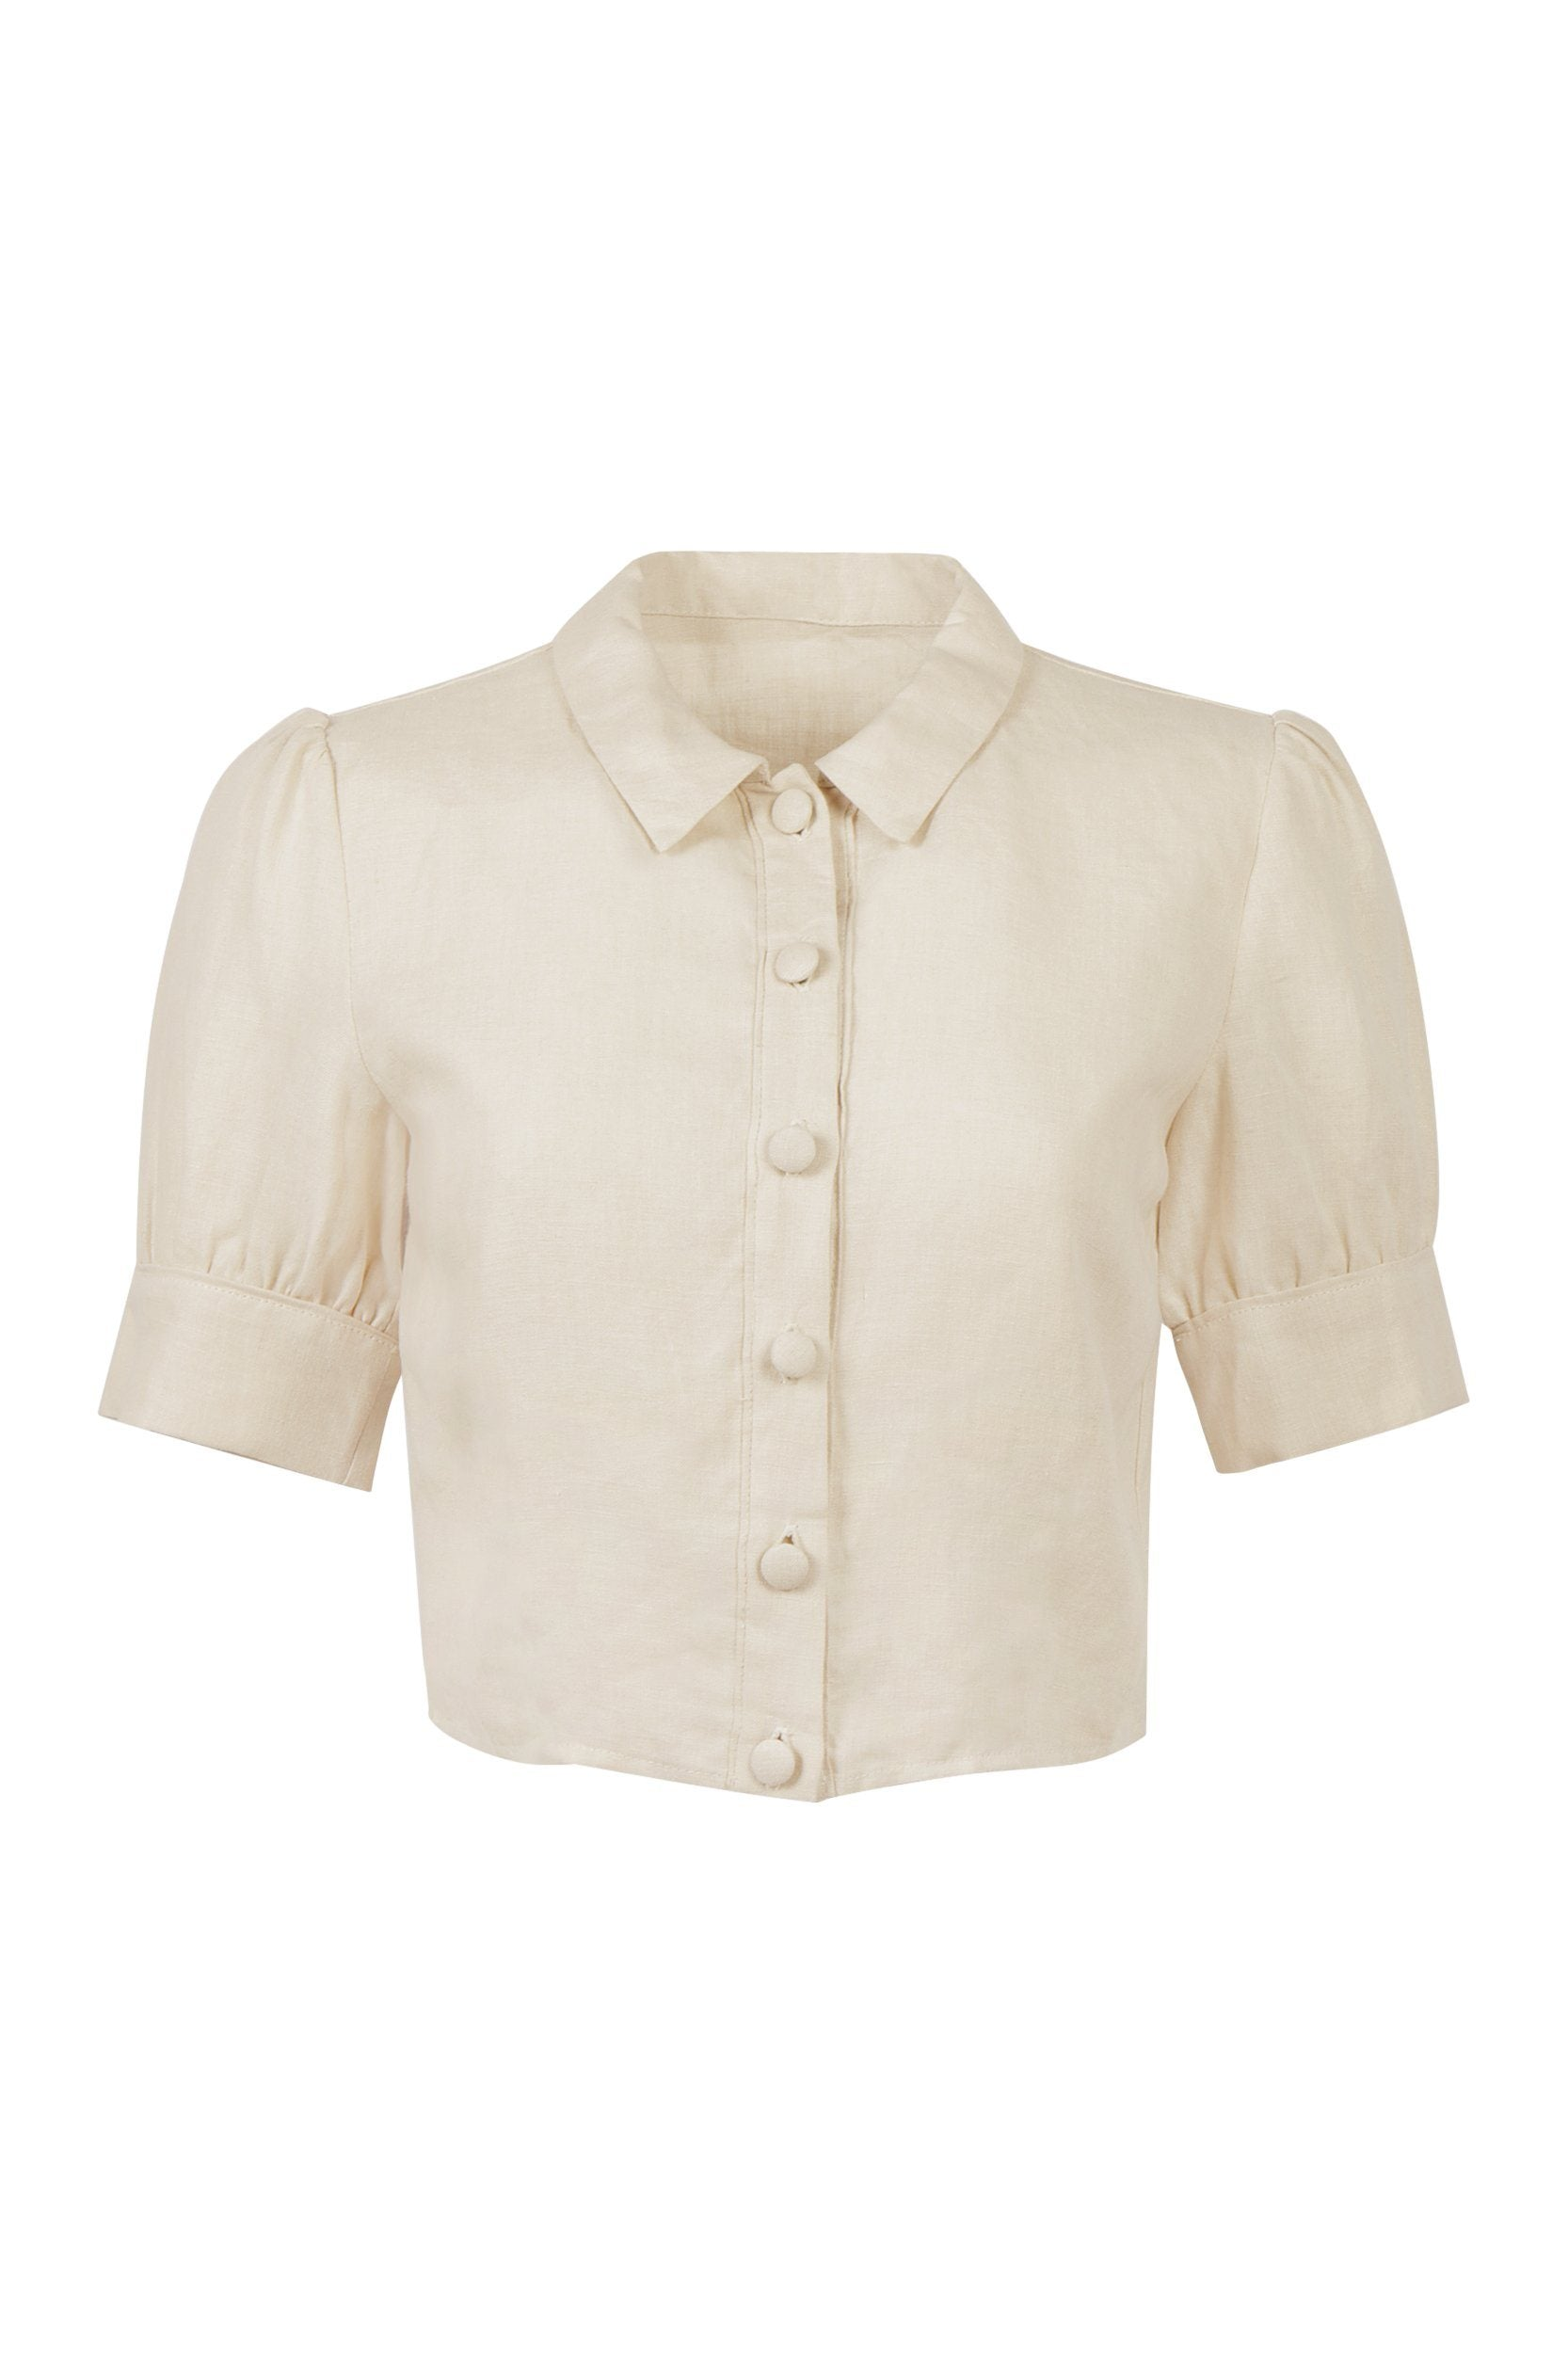 Daphne Top - Natural Linen